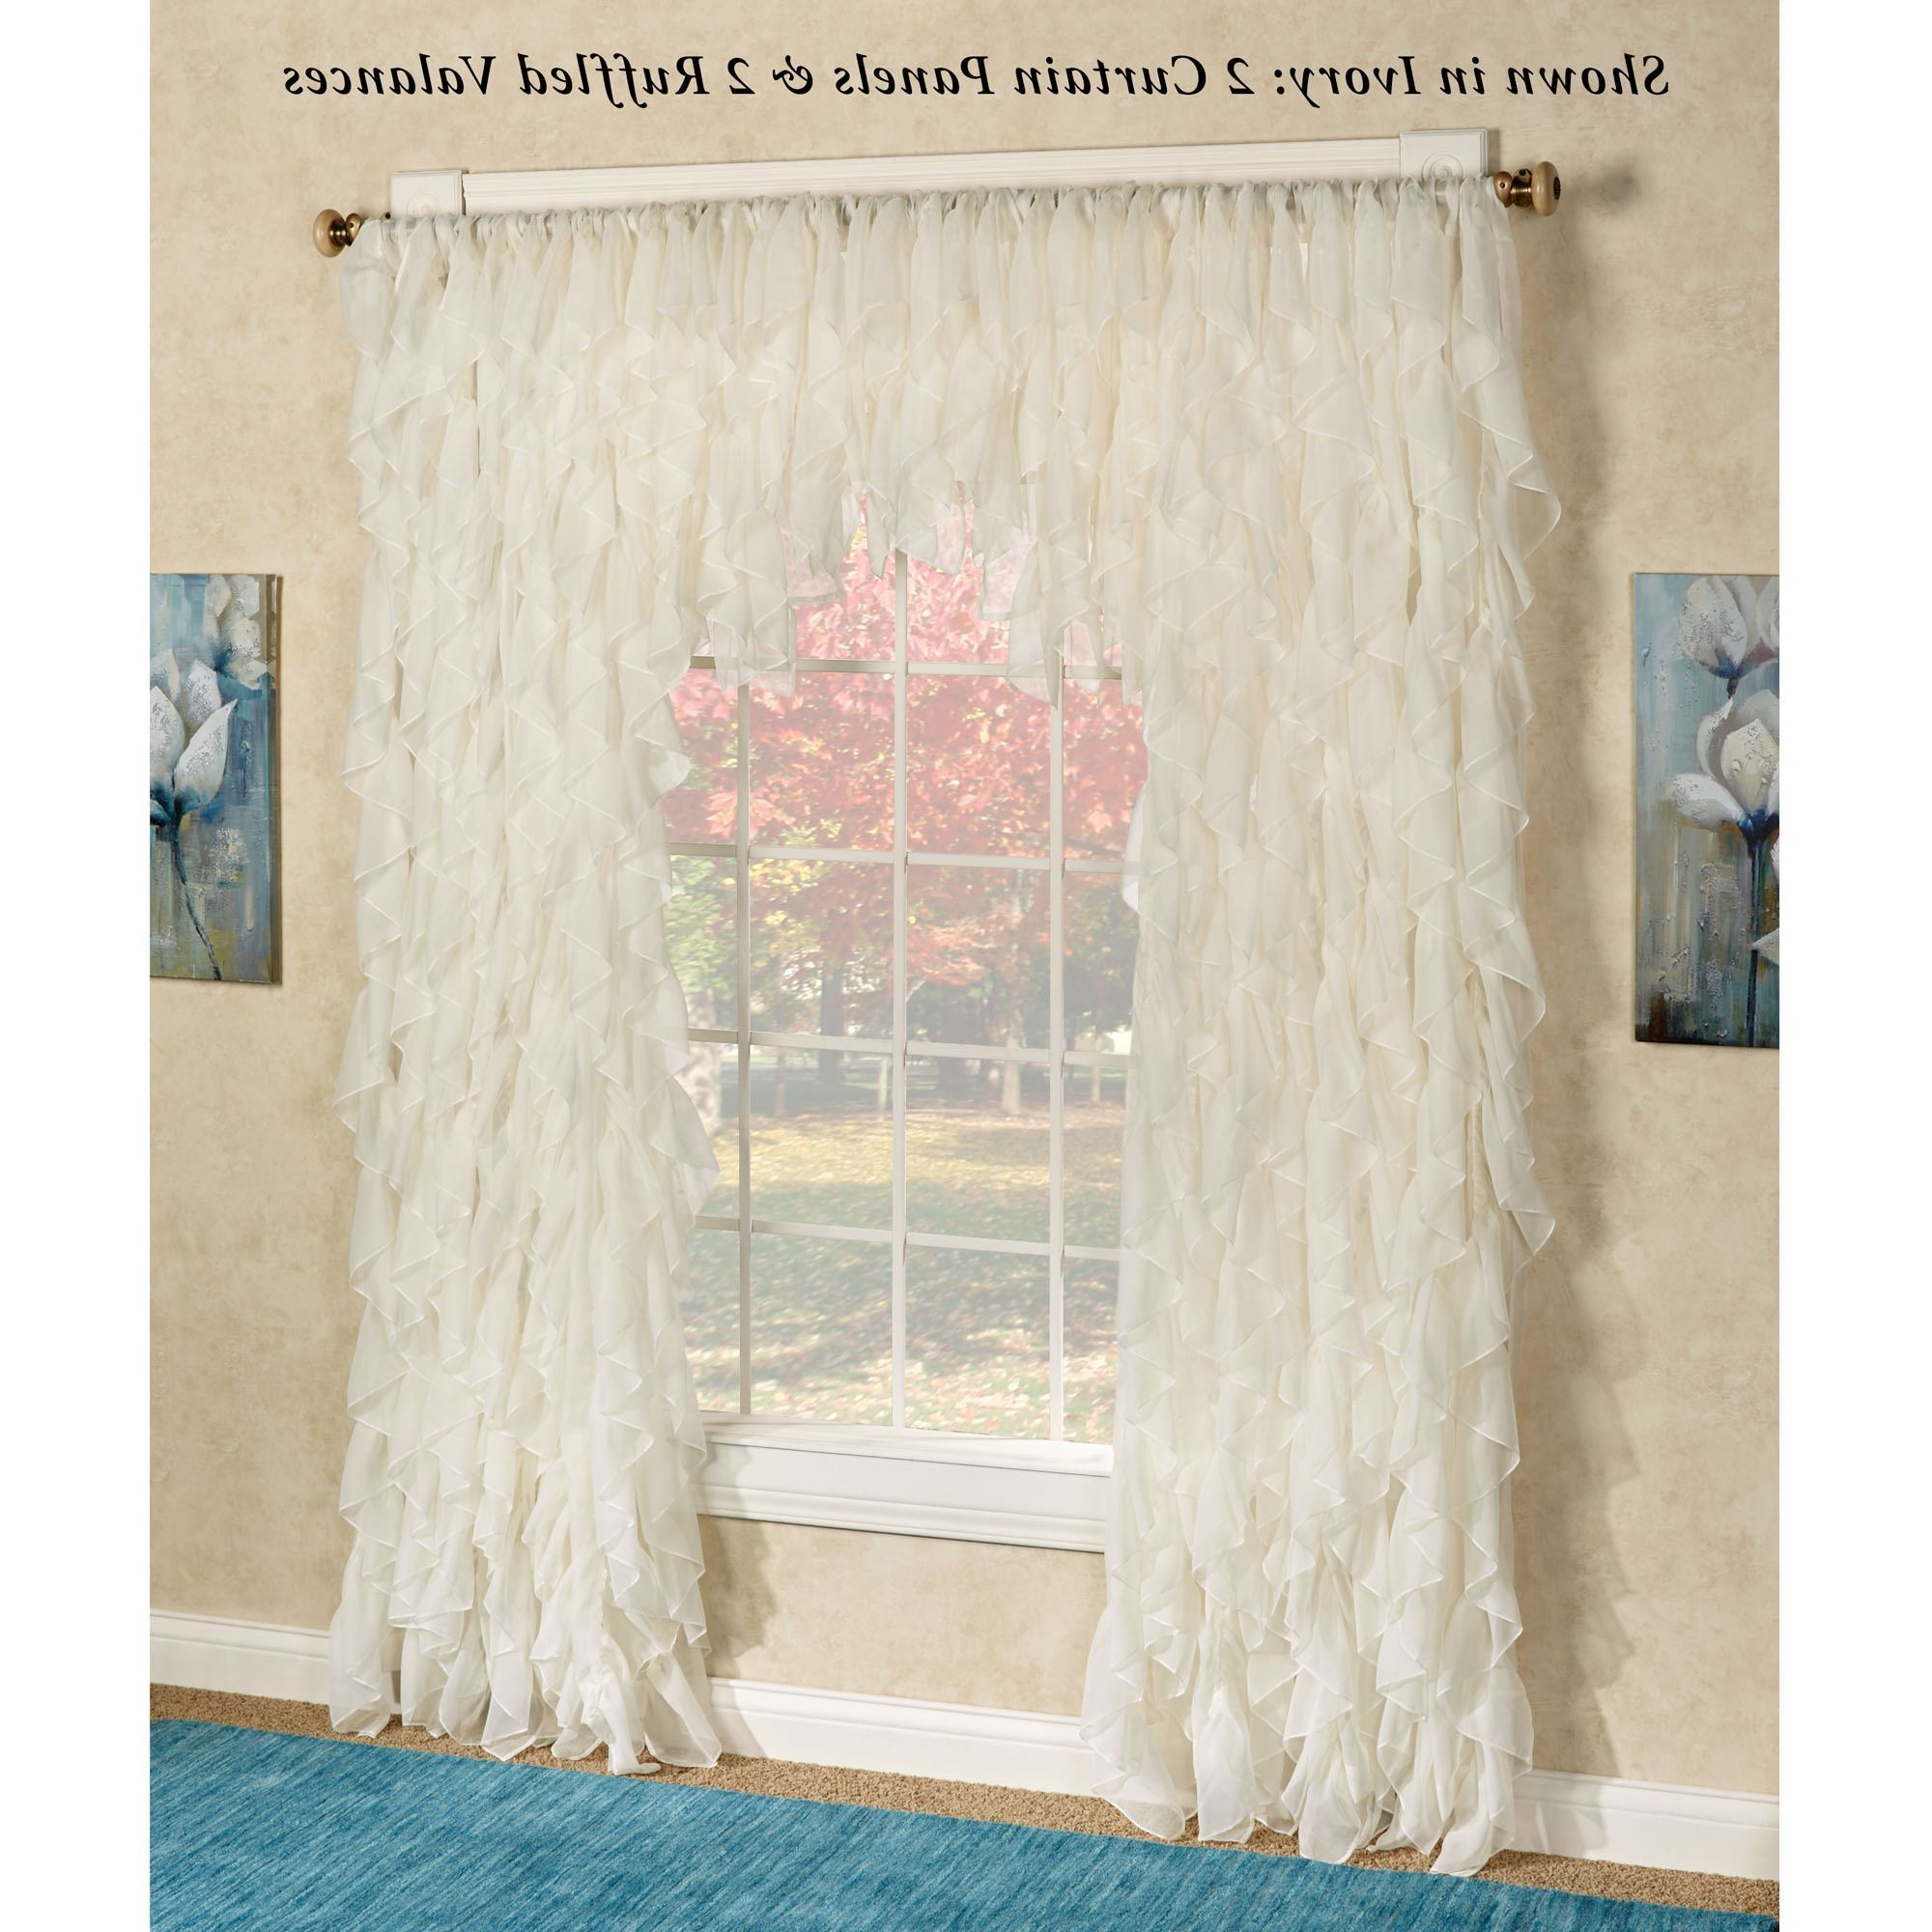 Cascade Sheer Voile Ruffled Window Treatment Regarding Well Liked Sheer Voile Ruffled Tier Window Curtain Panels (View 1 of 20)